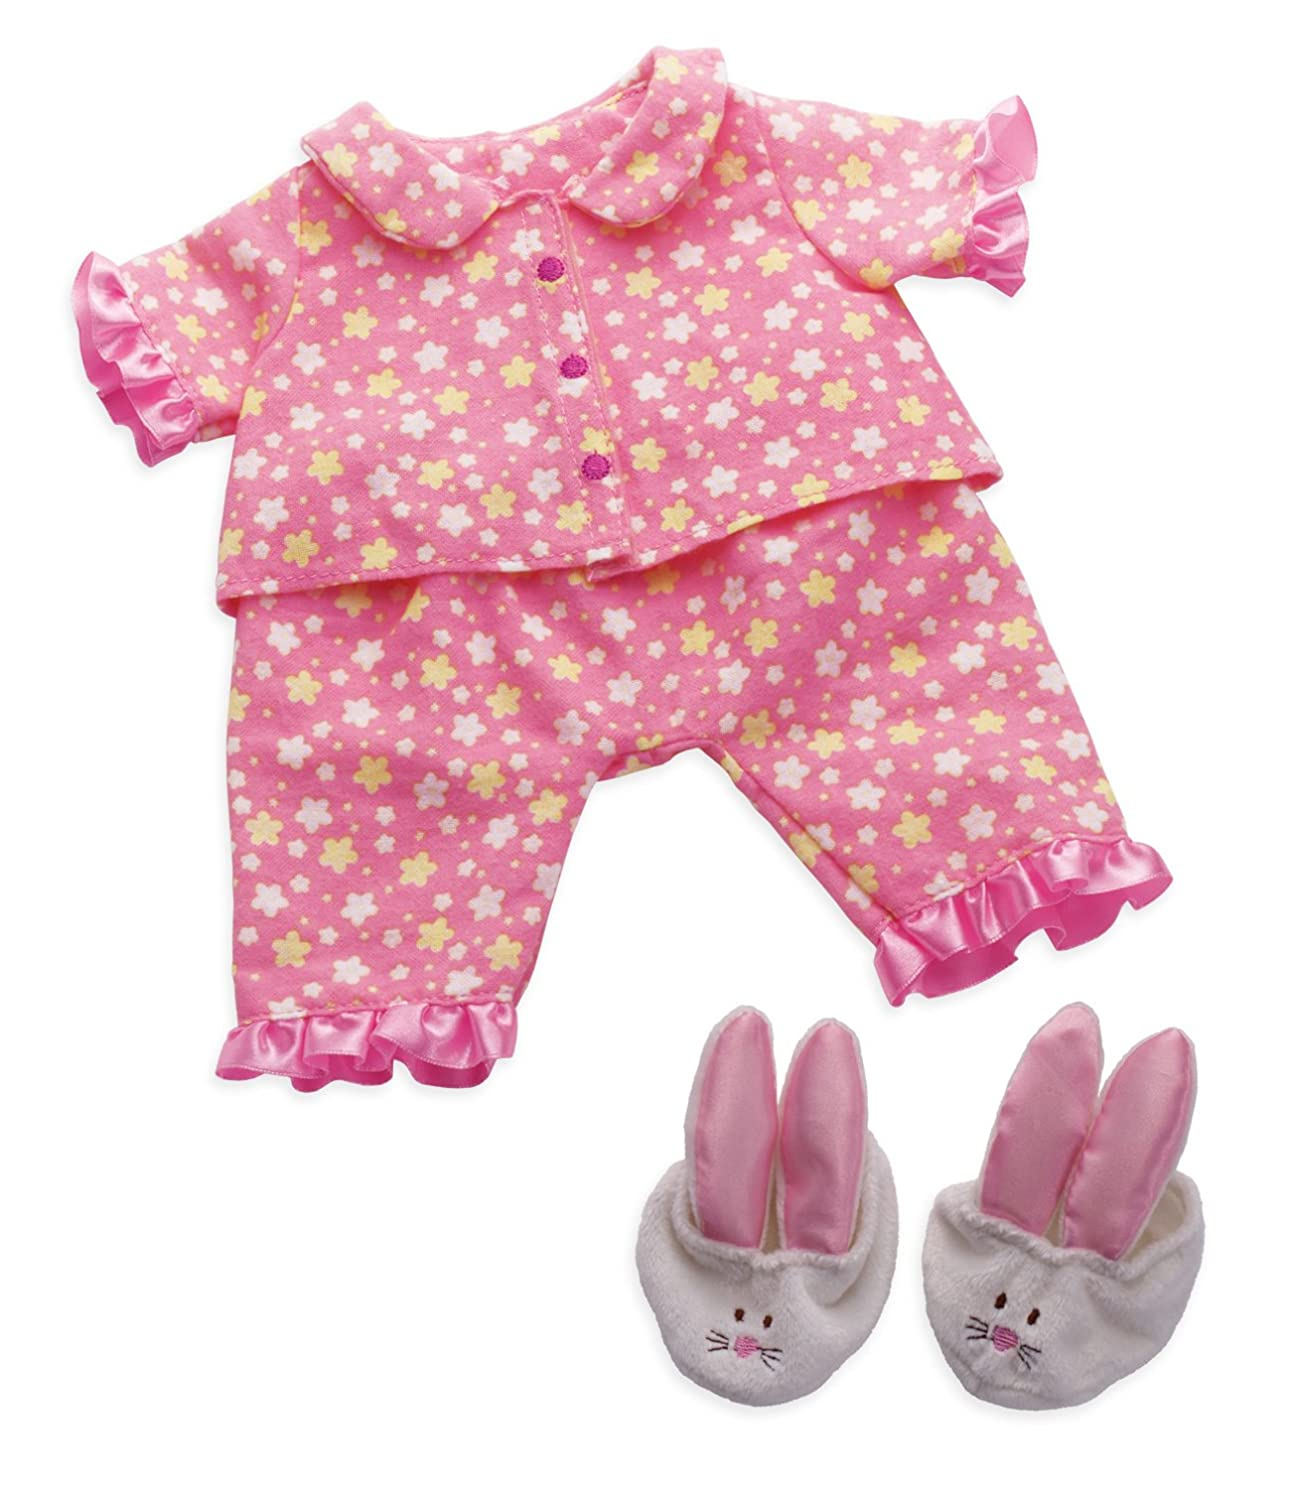 Manhattan Toy Baby Stella Goodnight Pajama Baby Doll Clothes for 15 Dolls 149200